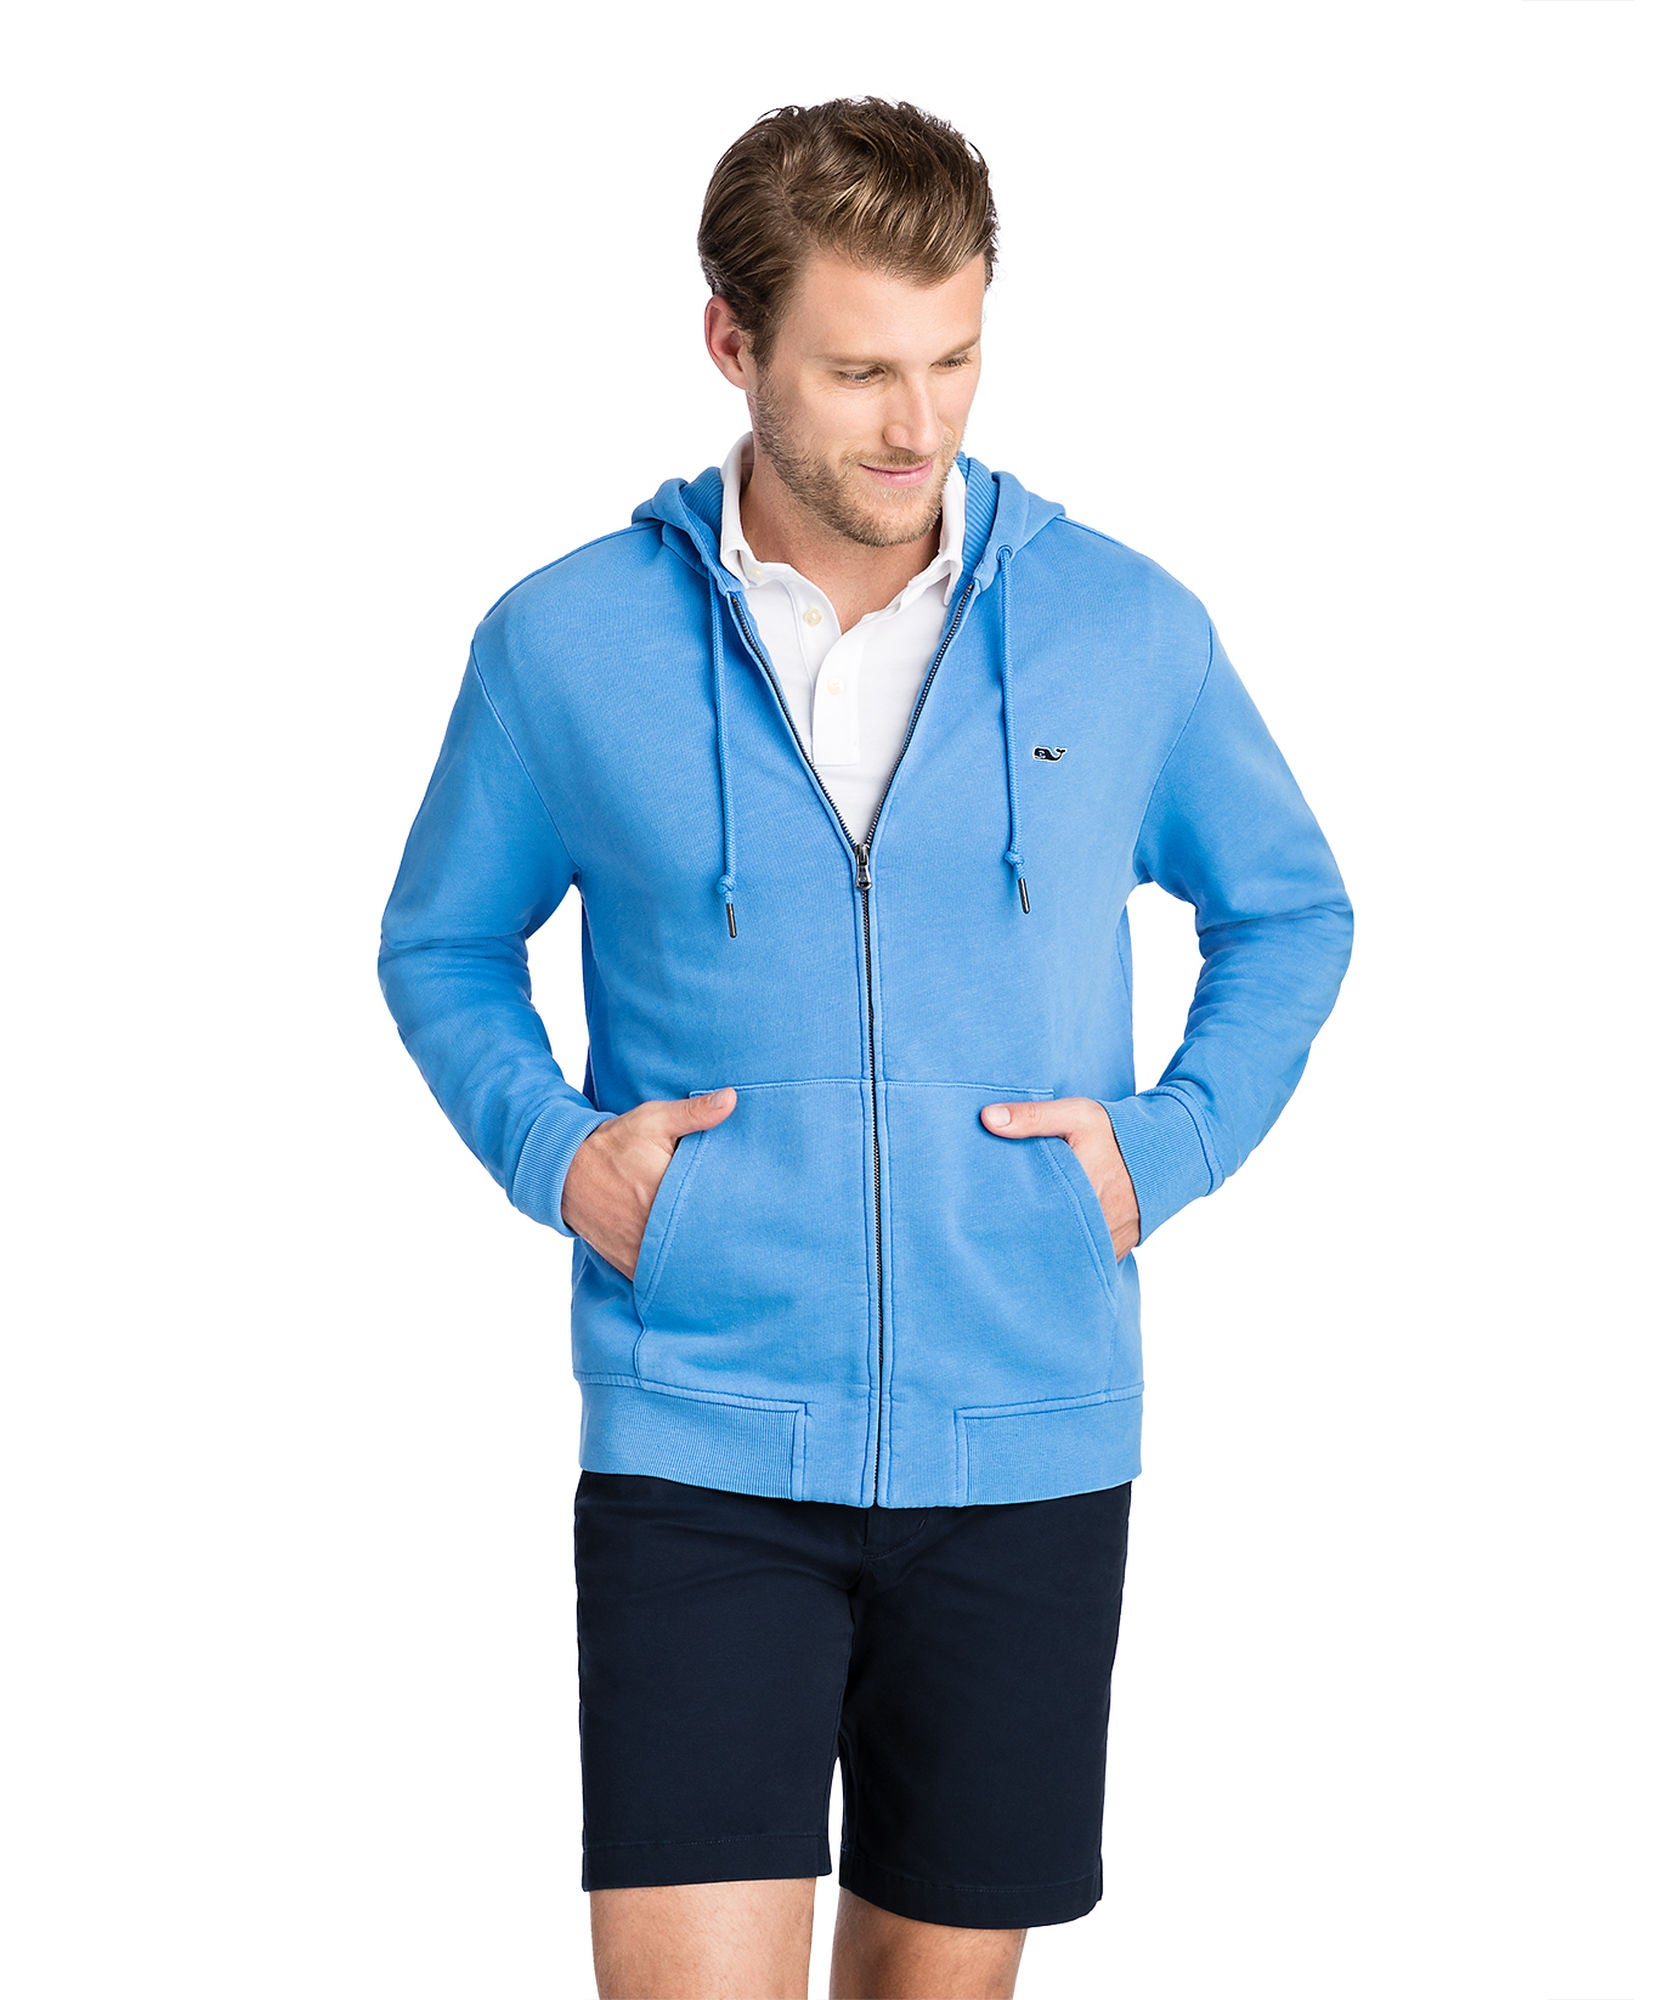 Vineyard Vines Garment-Dyed Full Zip Hoodie - Hull Blue